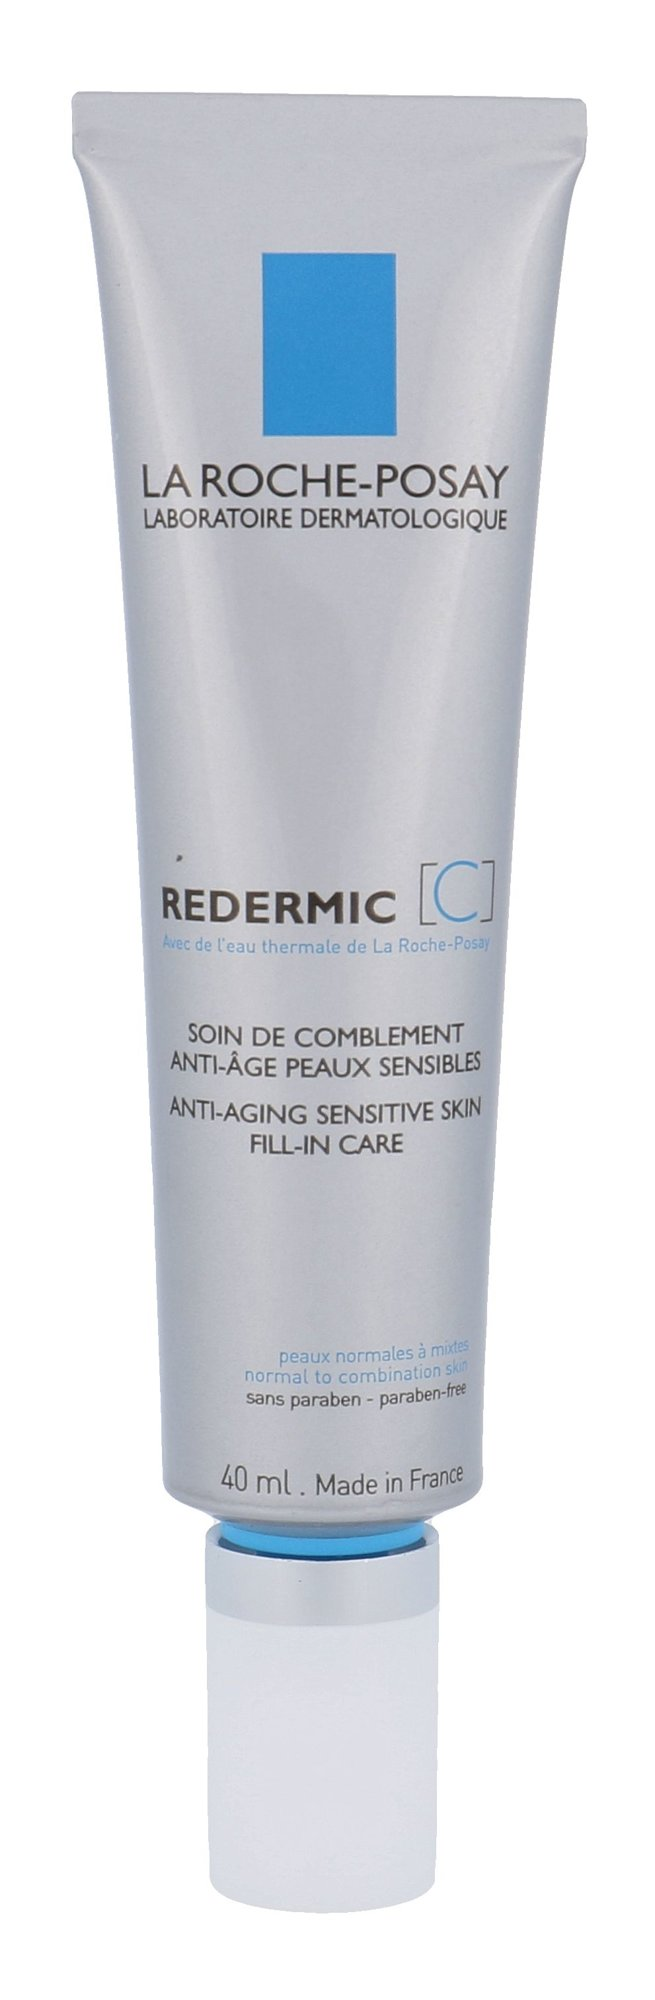 La Roche-Posay Redermic C Cosmetic 40ml